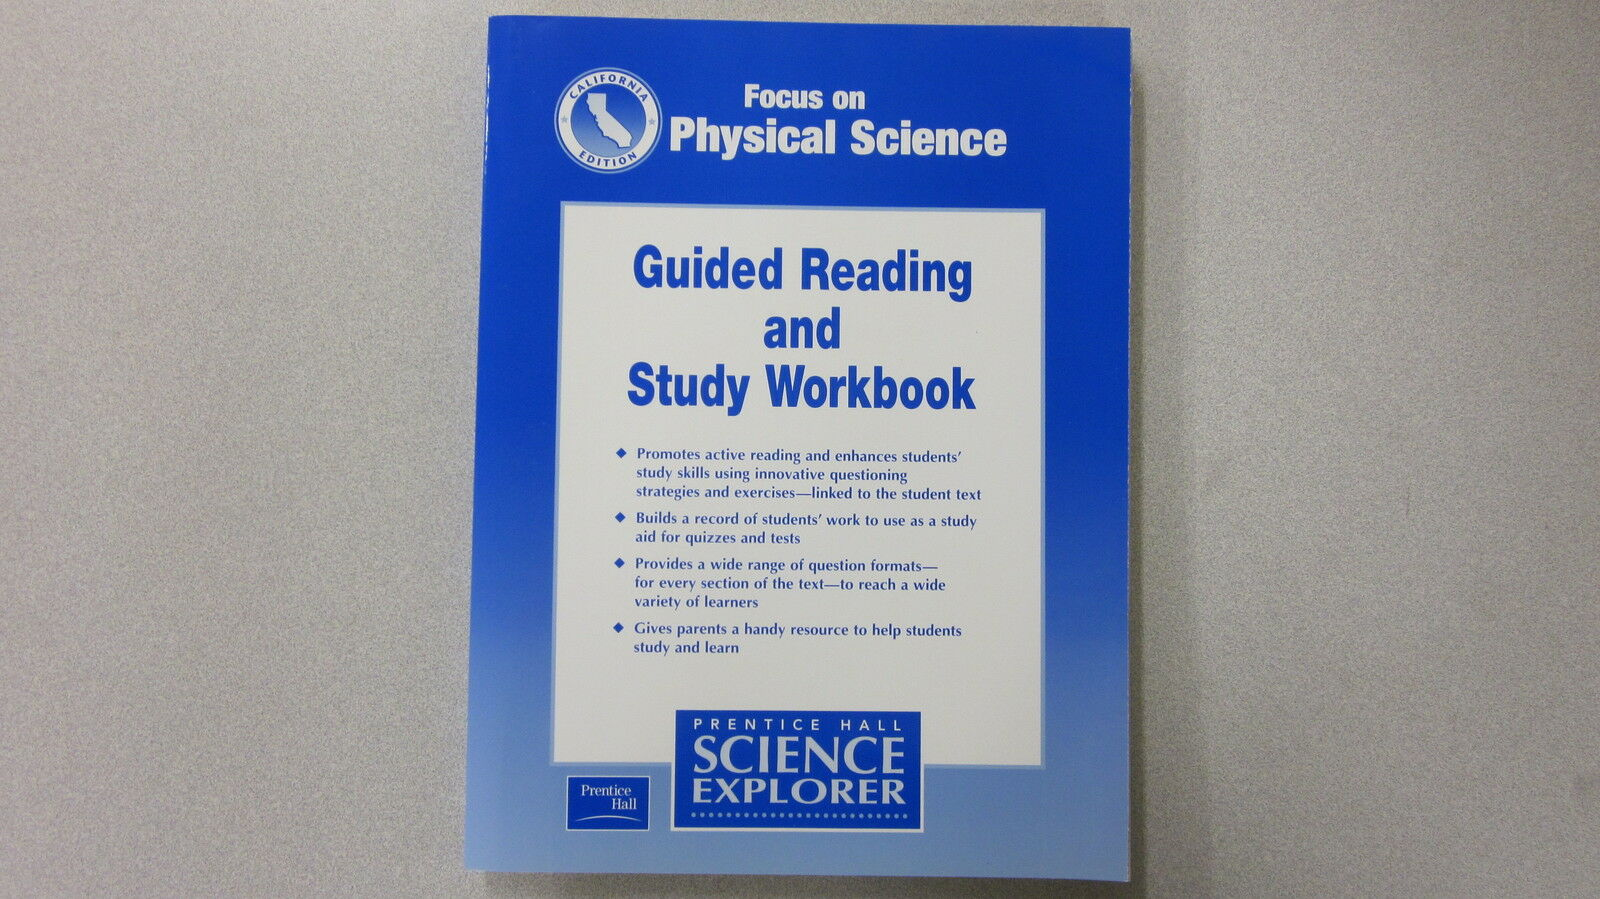 Workbooks physical science guided reading and study workbook : Focus on Physical Science Guided Reading and Study Workbook ...